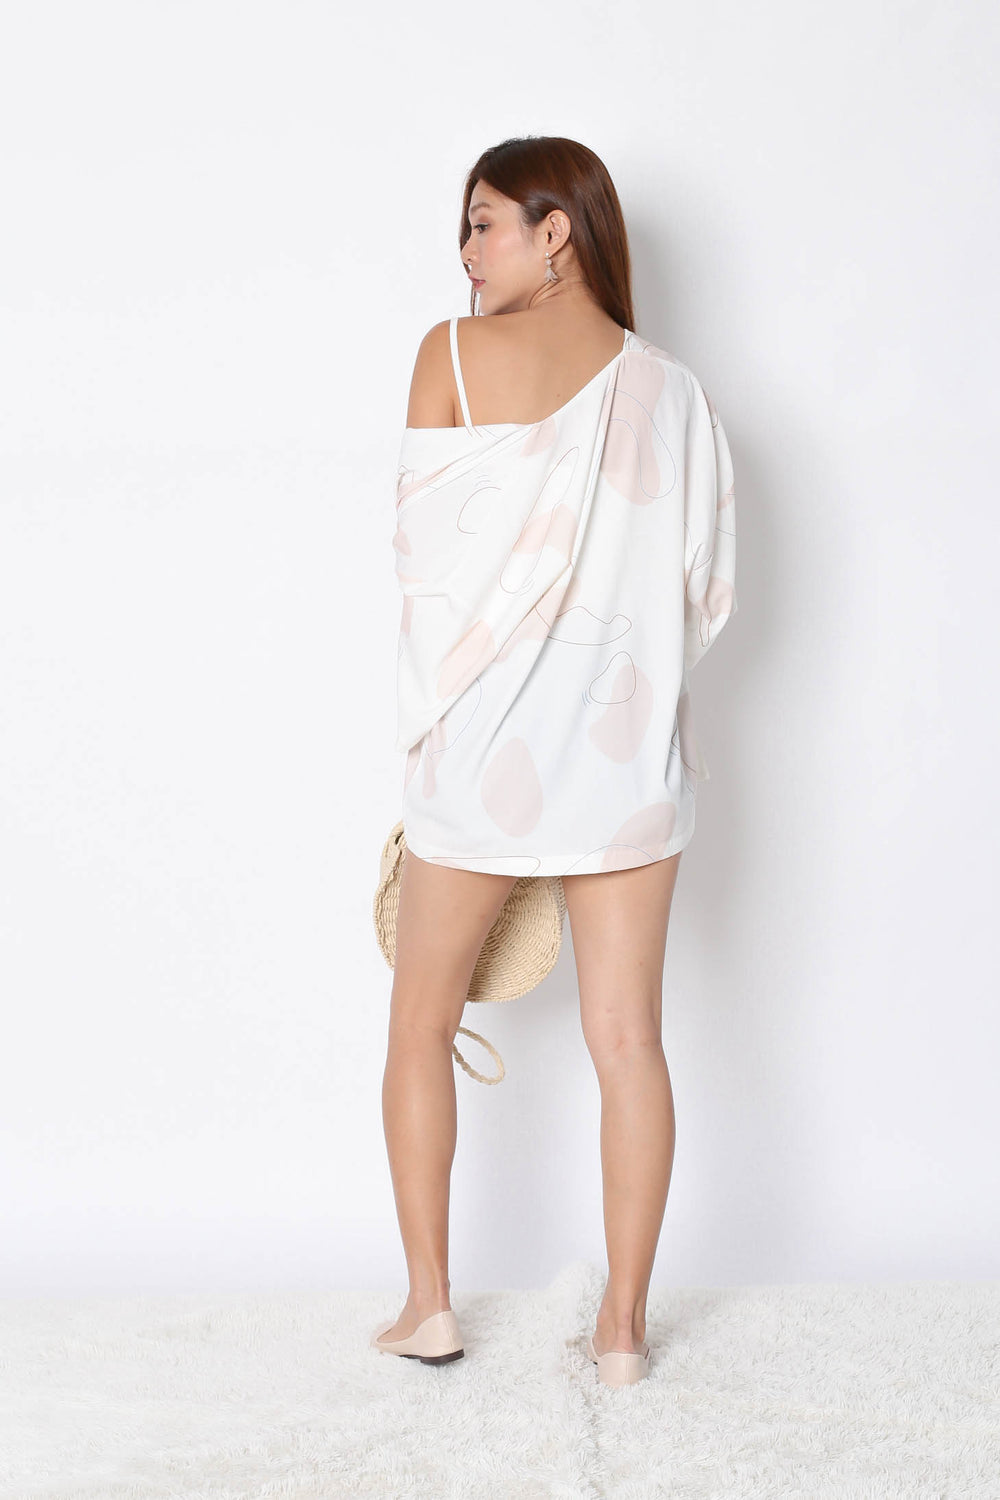 *TPZ* (PREMIUM) FELLE KIMONO ABSTRACT JACKET IN WHITE